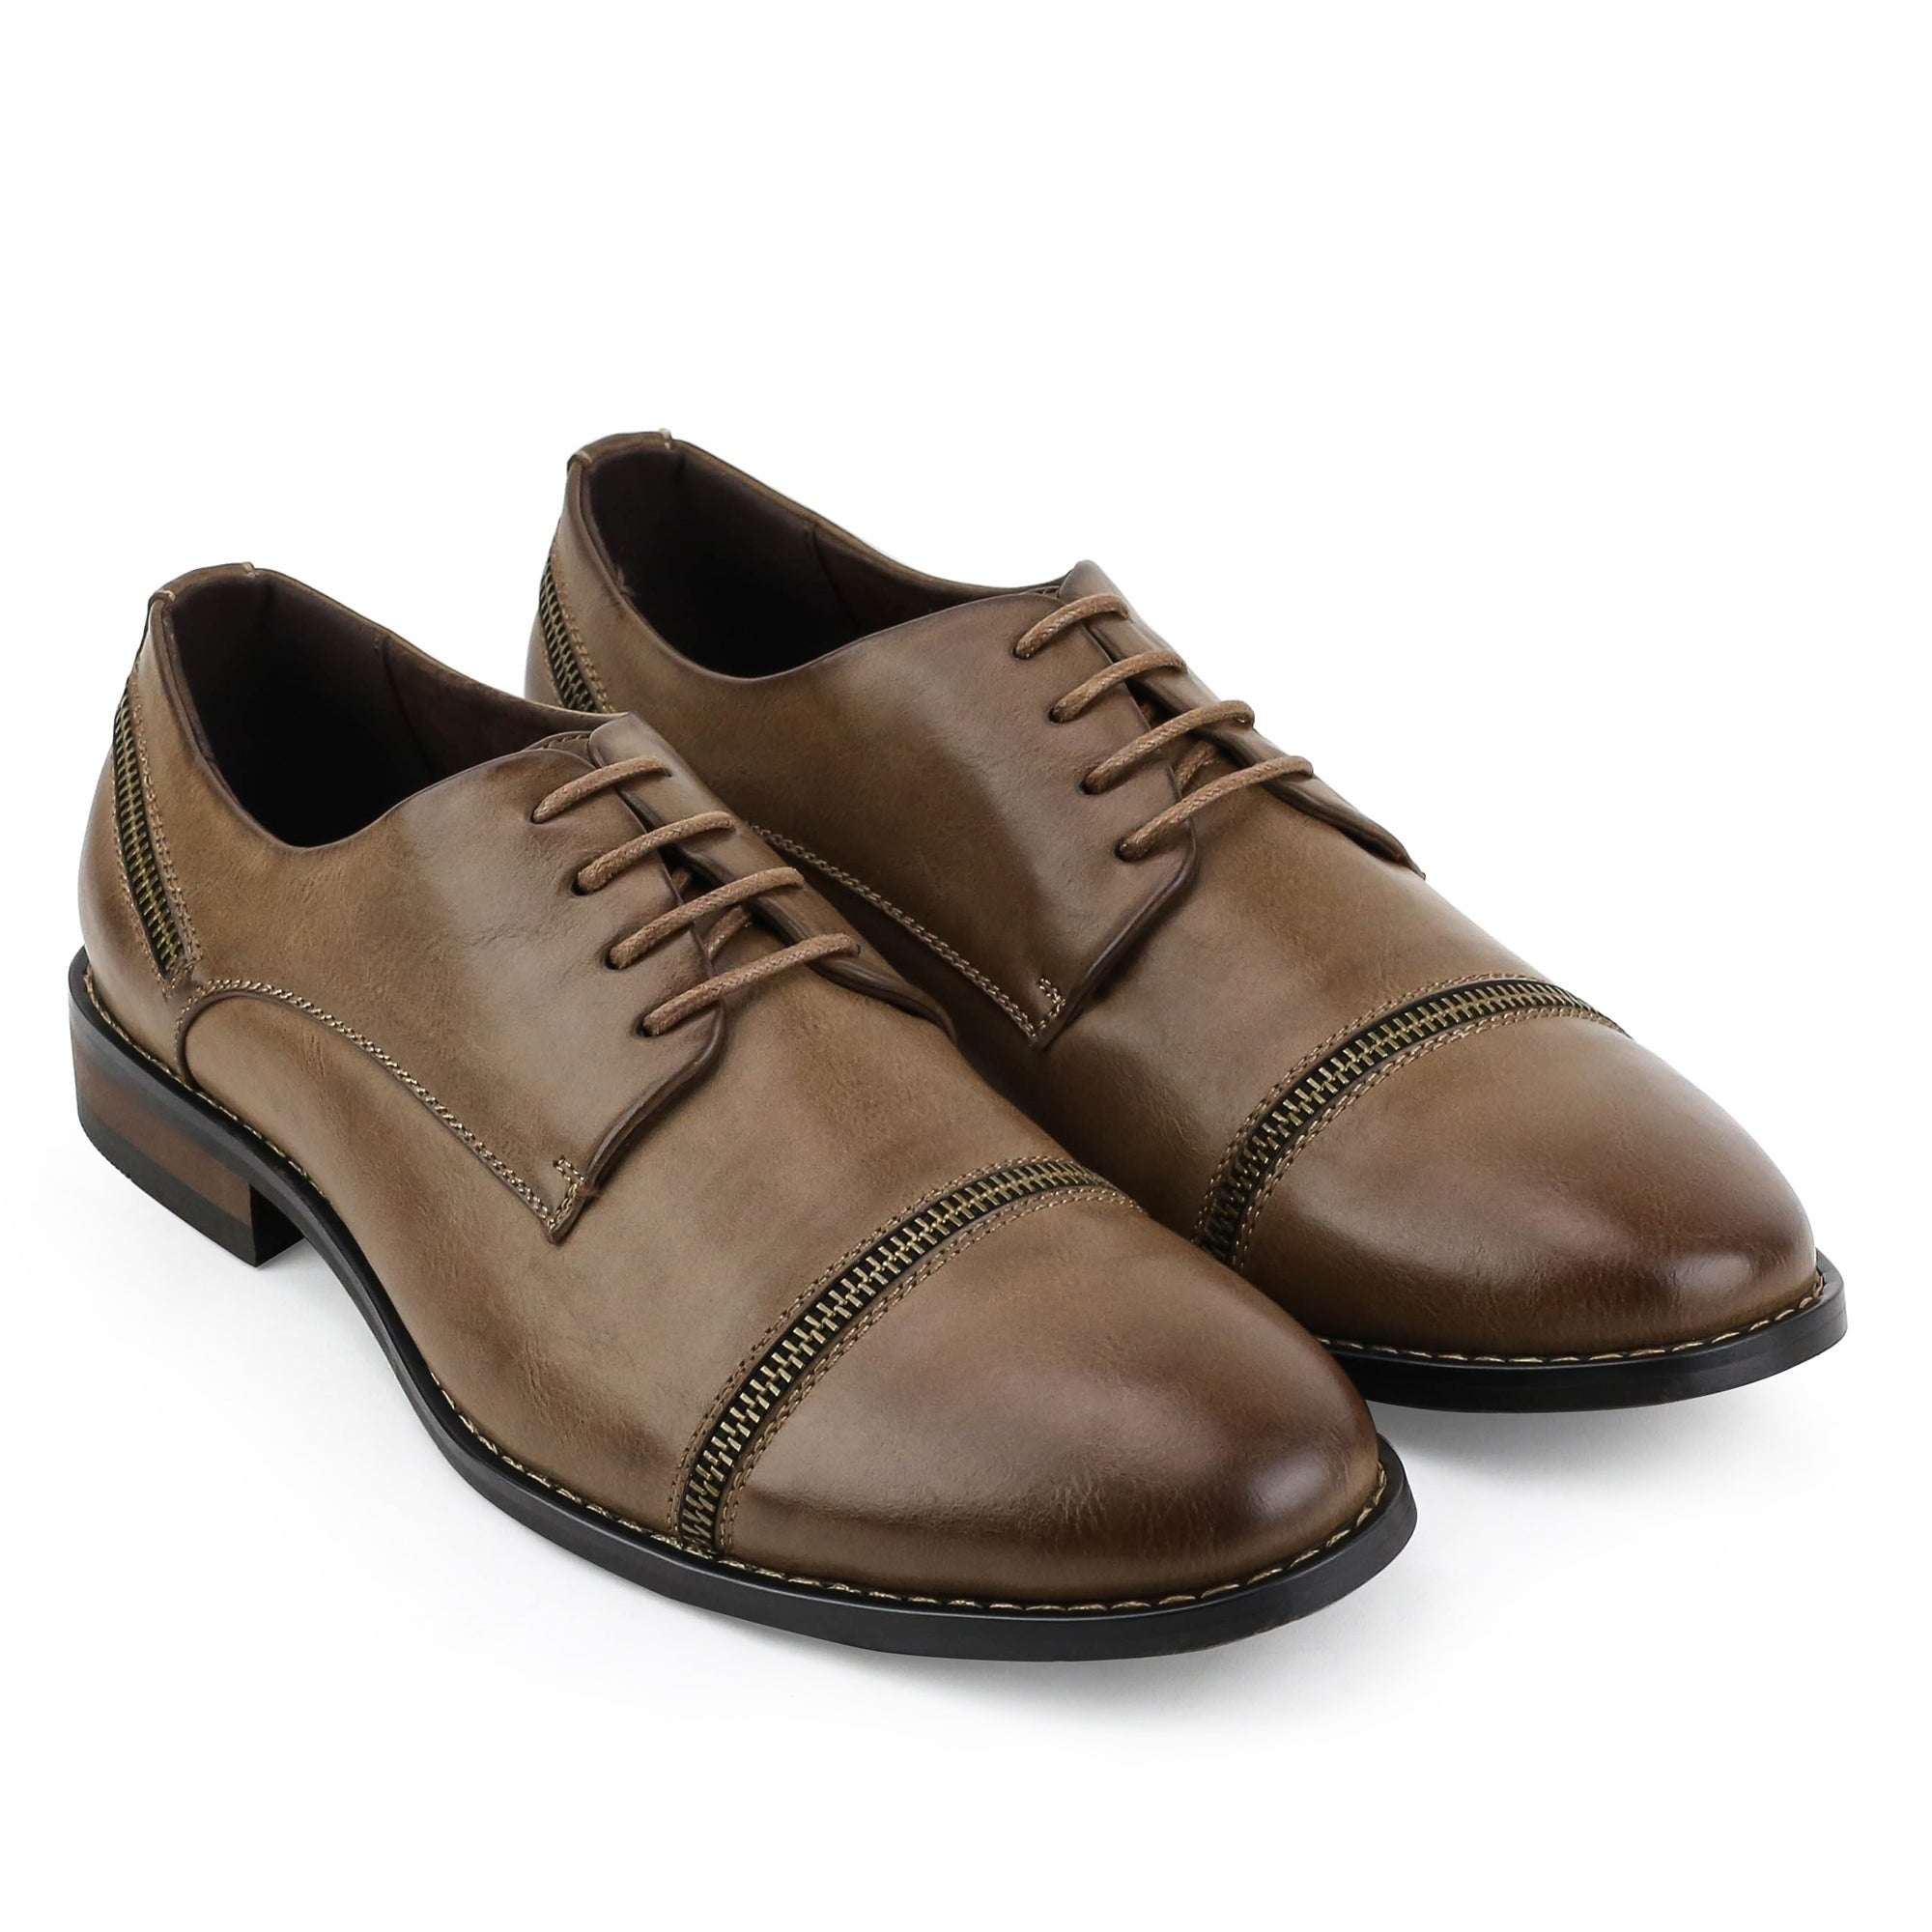 a4cbc3f049b Shop Xray Bedford Cap-Toe Dressy - On Sale - Free Shipping On Orders Over   45 - Overstock - 17964710